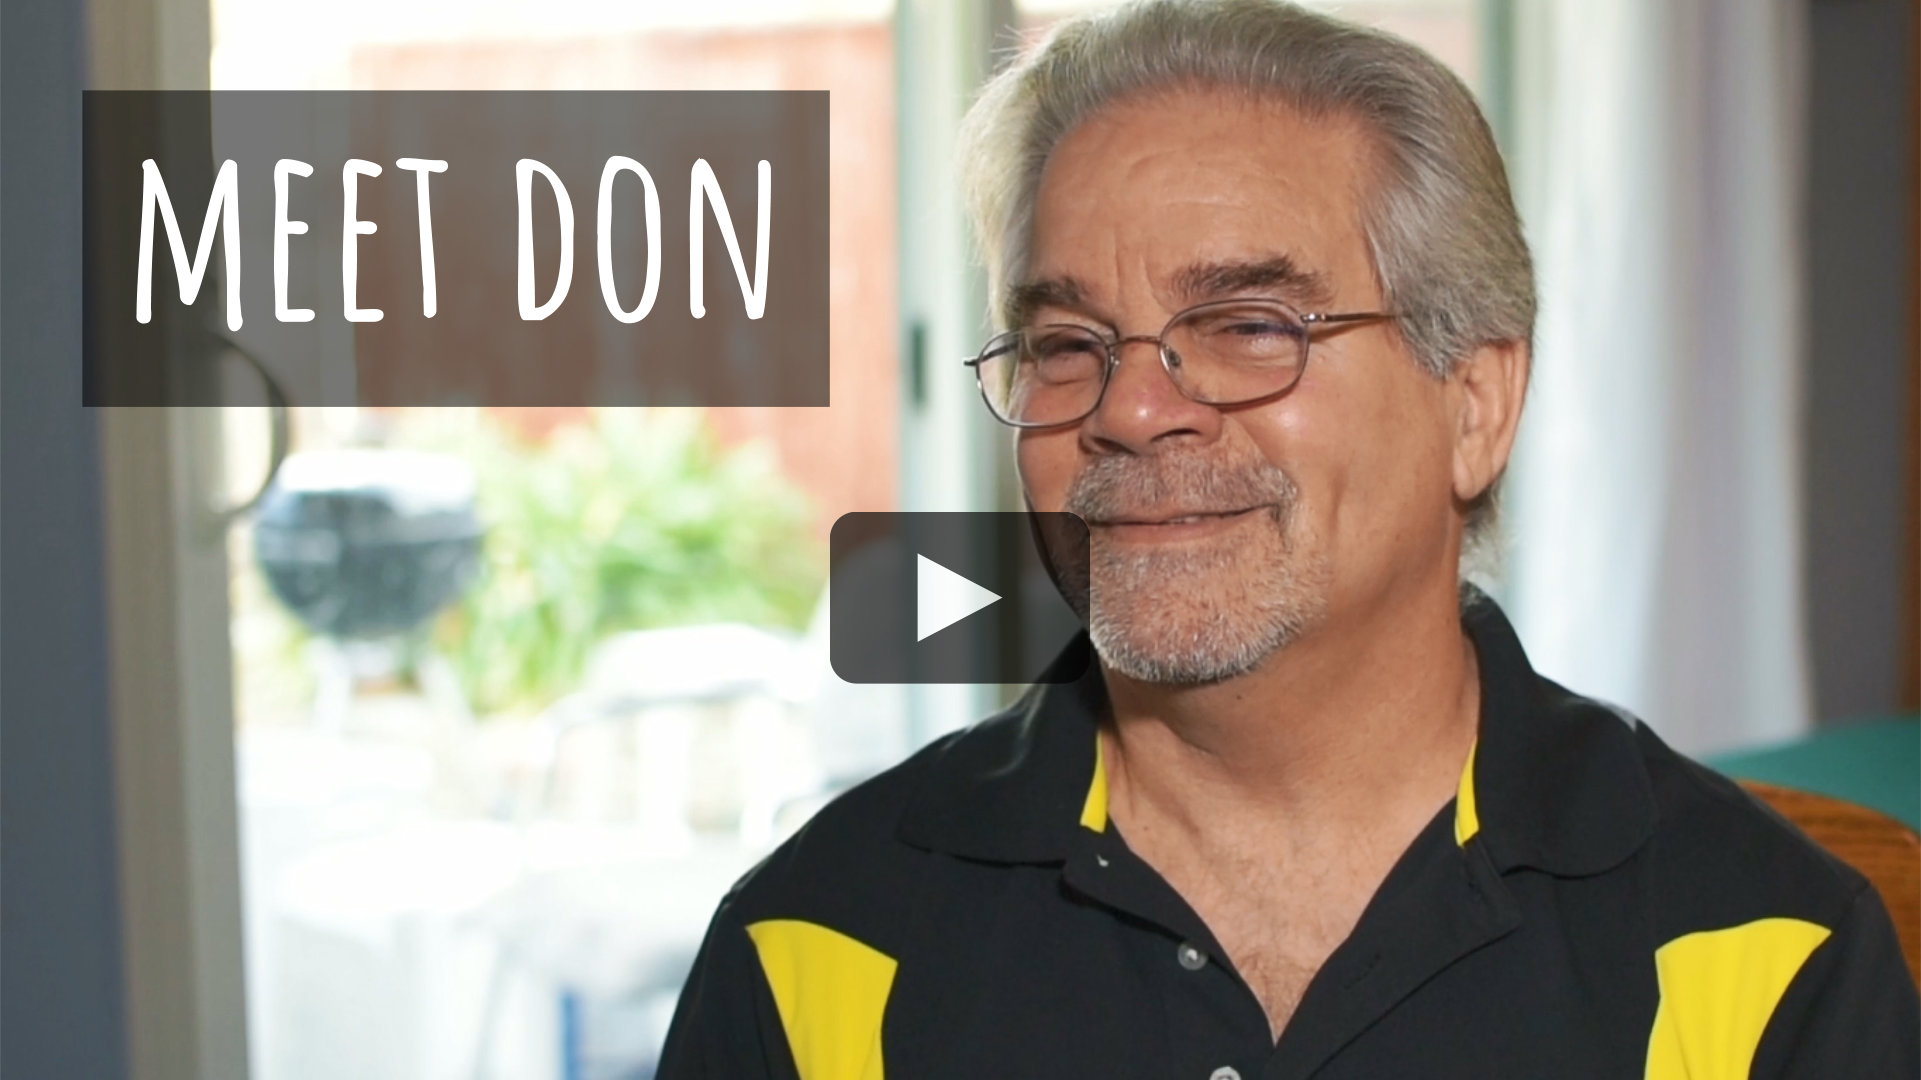 This video goes over Don's story as a knee replacement patient of NorthBay Healthcare.